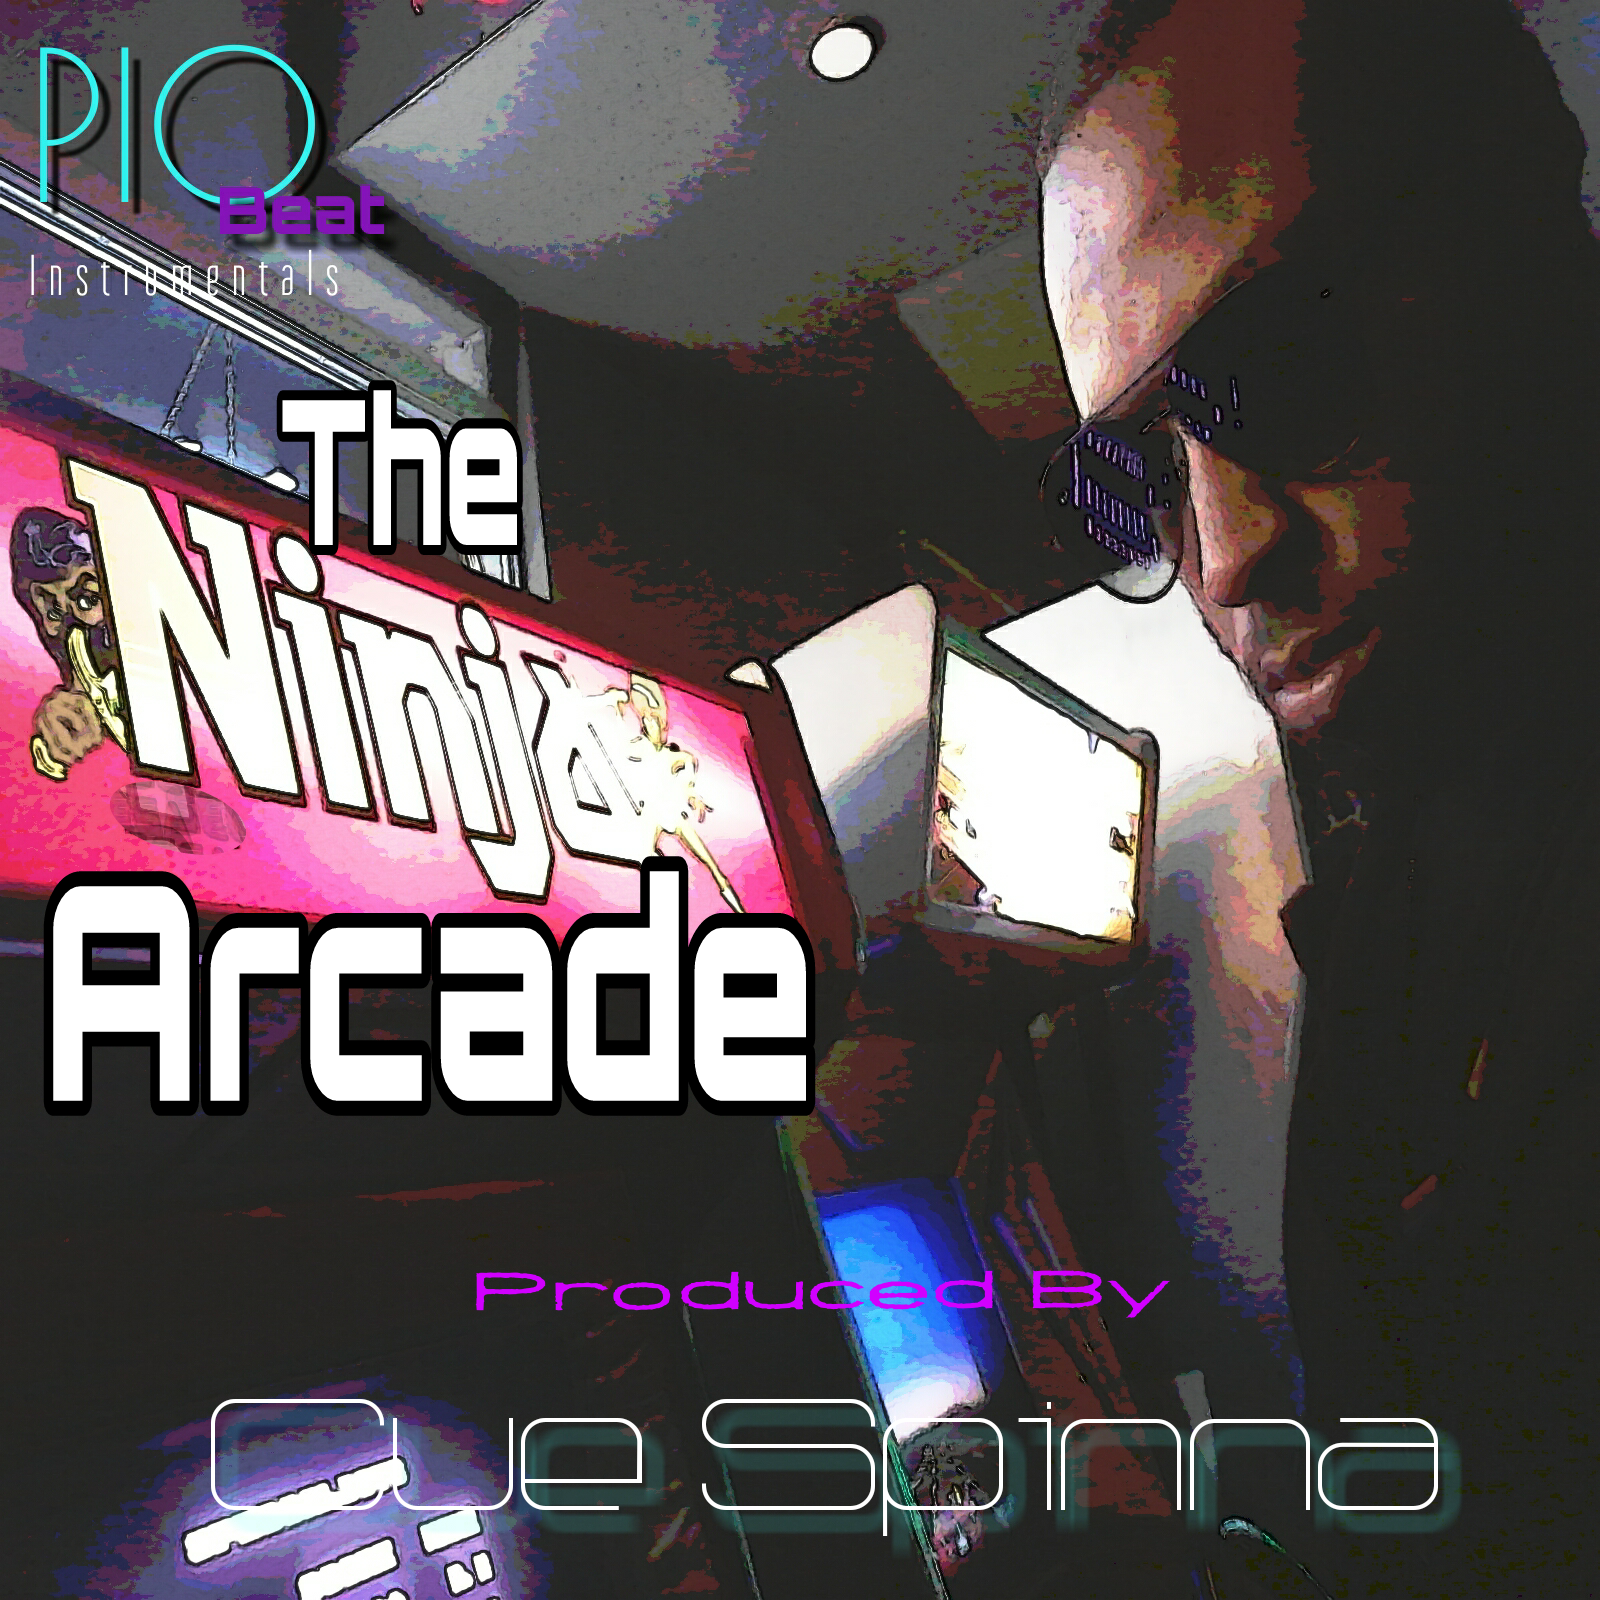 'The Ninja Arcade' Instrumental LP